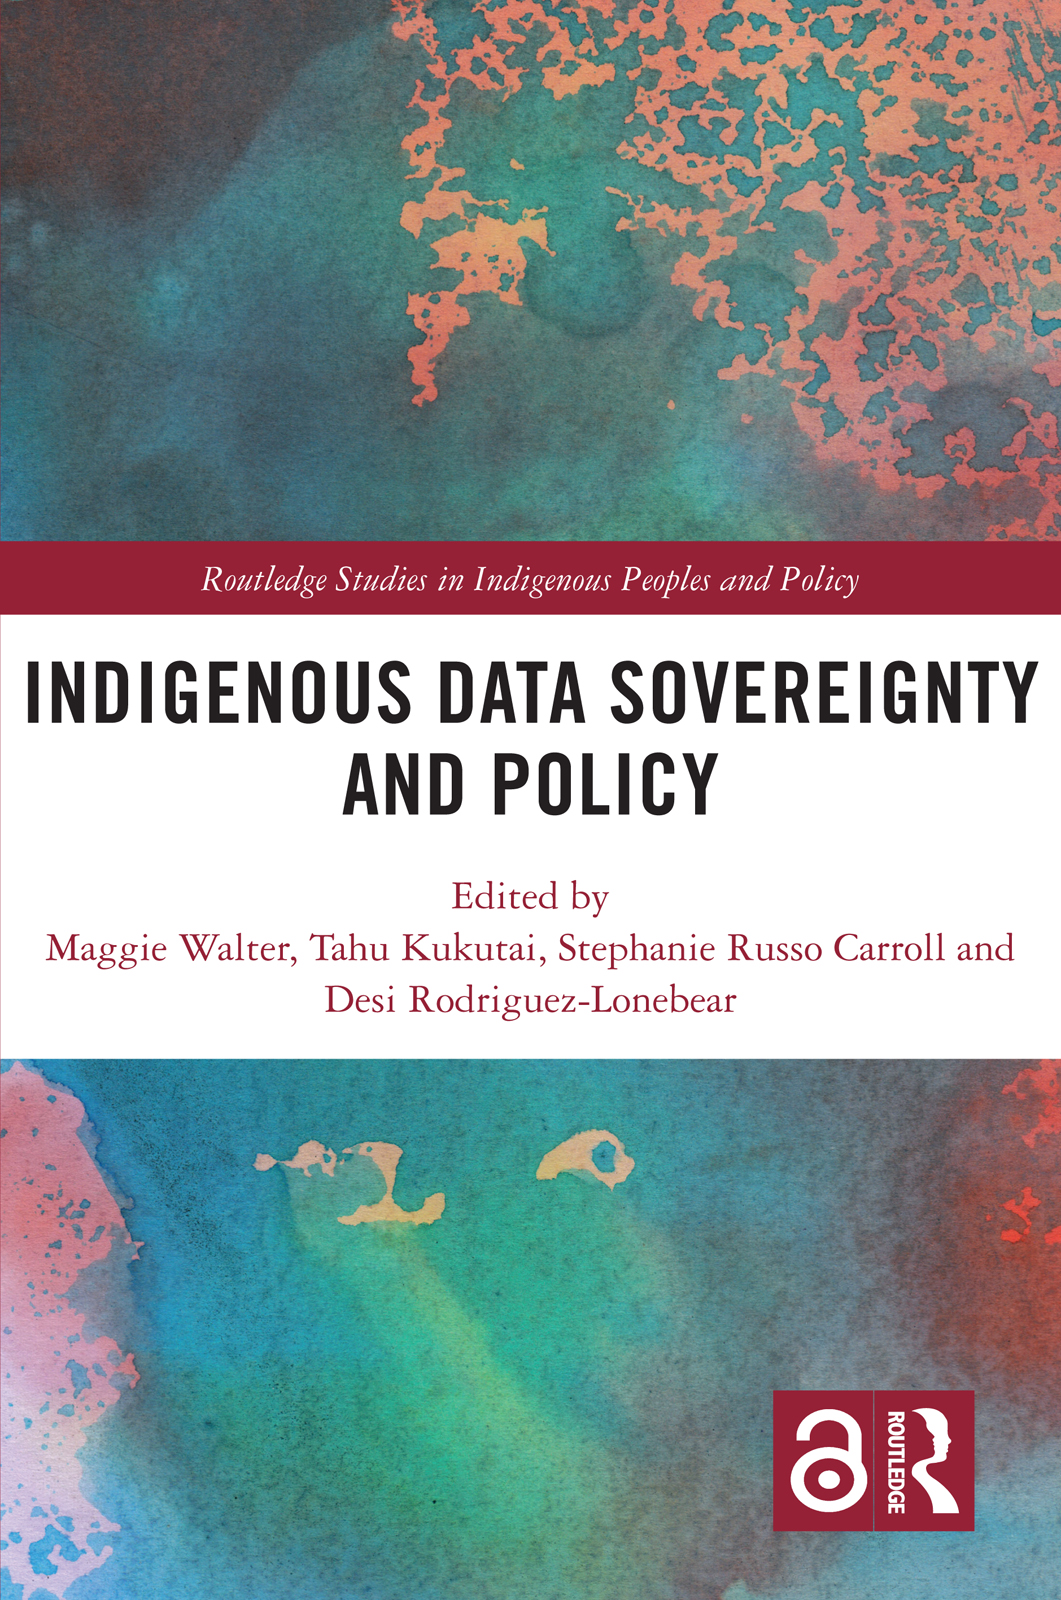 Indigenous data and policy in Aotearoa New Zealand